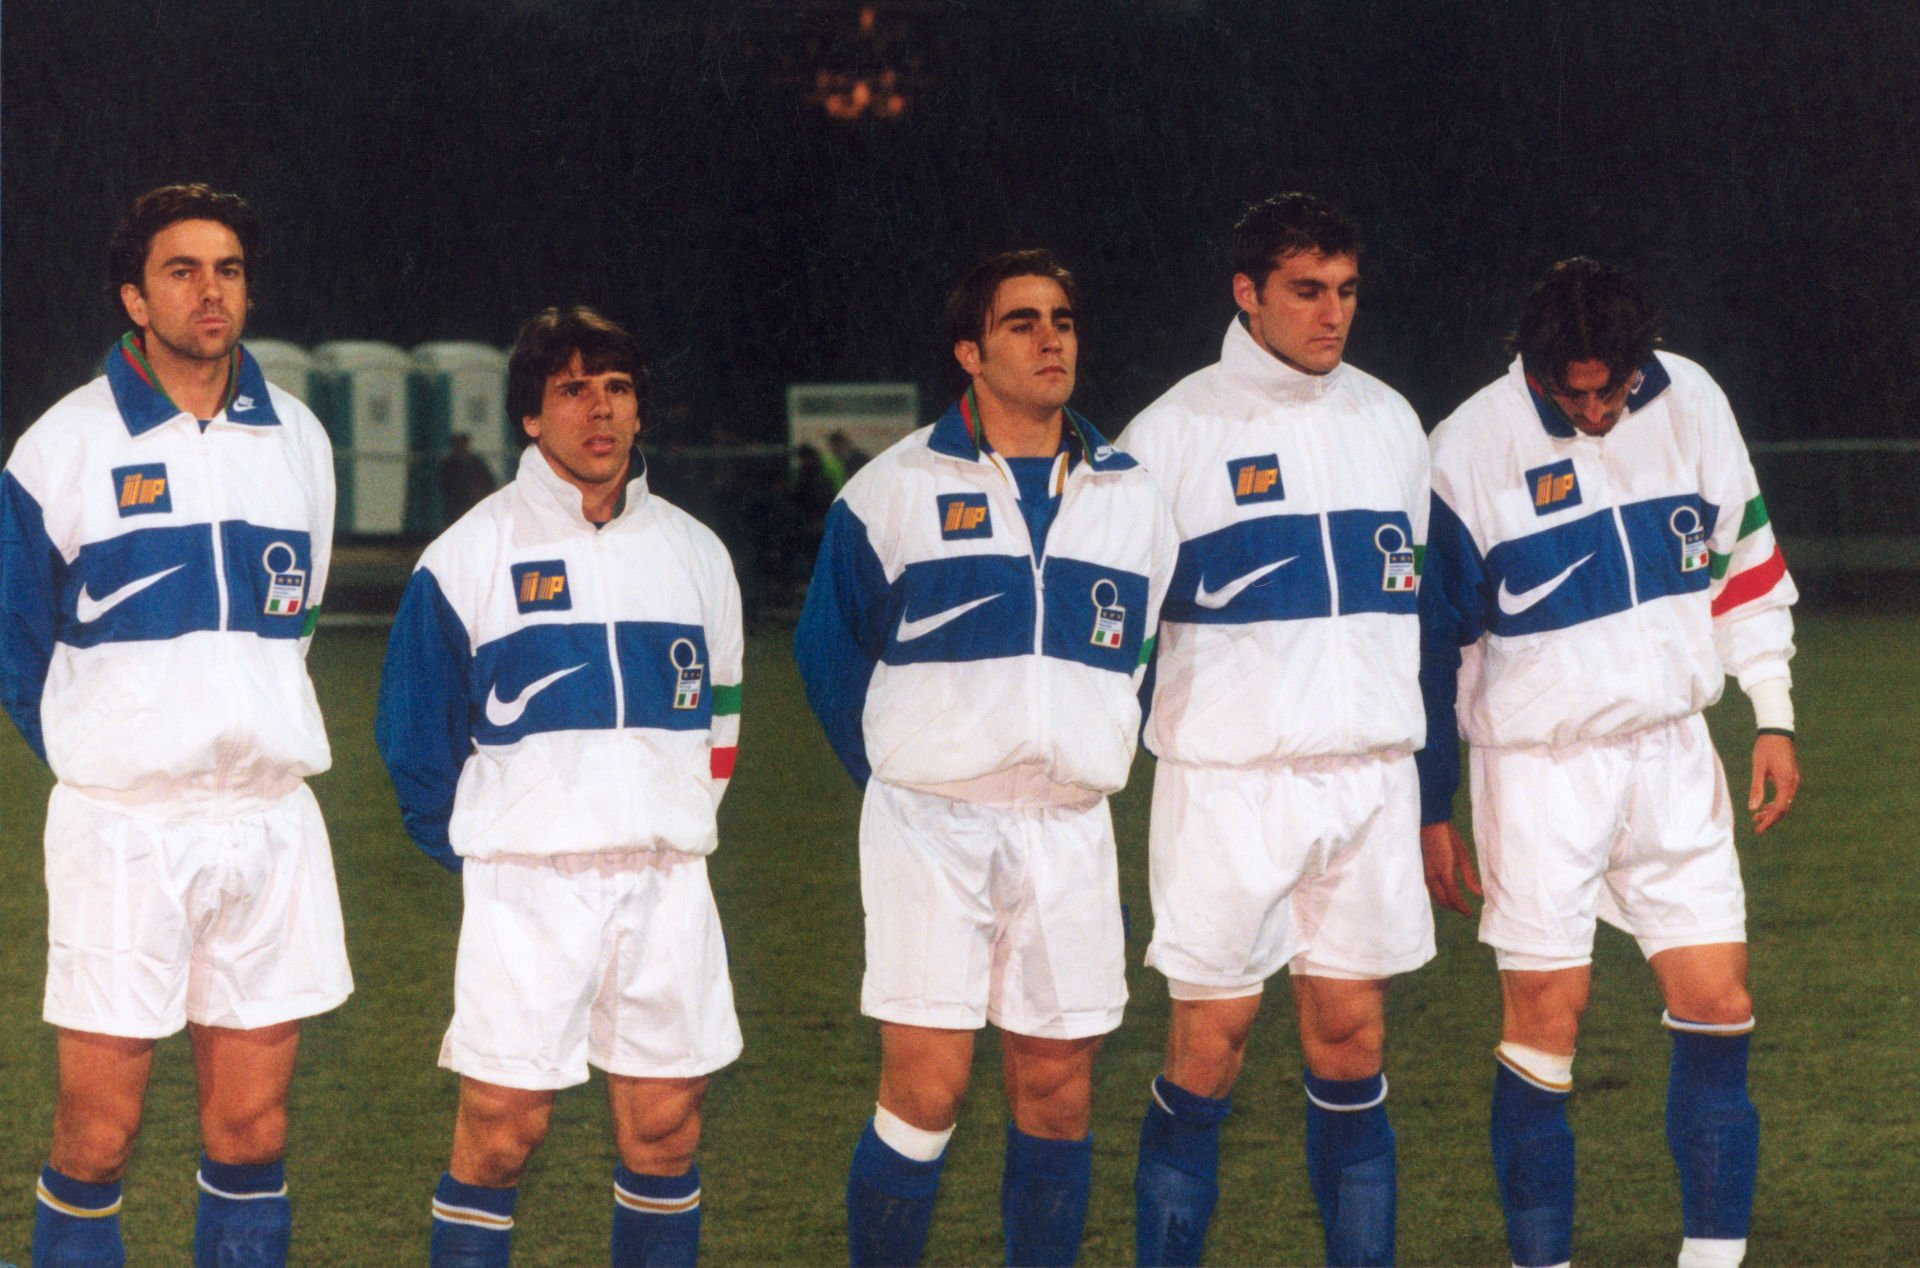 Polska - Wlochy 0:0 (Chorzow, 02.04.1997). Od lewej: COSTACURTA ALESSANDRO, ZOLA GIANFRANCO, CANNAVARO FABIO, VIERI CHRISTIAN, BAGGIO DINO - pilkarz reprezentant Wloch. Pilka nozna. Fot. Jacek Koziol/Agencja Przeglad Sportowy --- Newspix.pl *** Local Caption *** www.newspix.pl mail us: info@newspix.pl call us: 0048 022 23 22 222 --- Polish Picture Agency by Axel Springer Poland